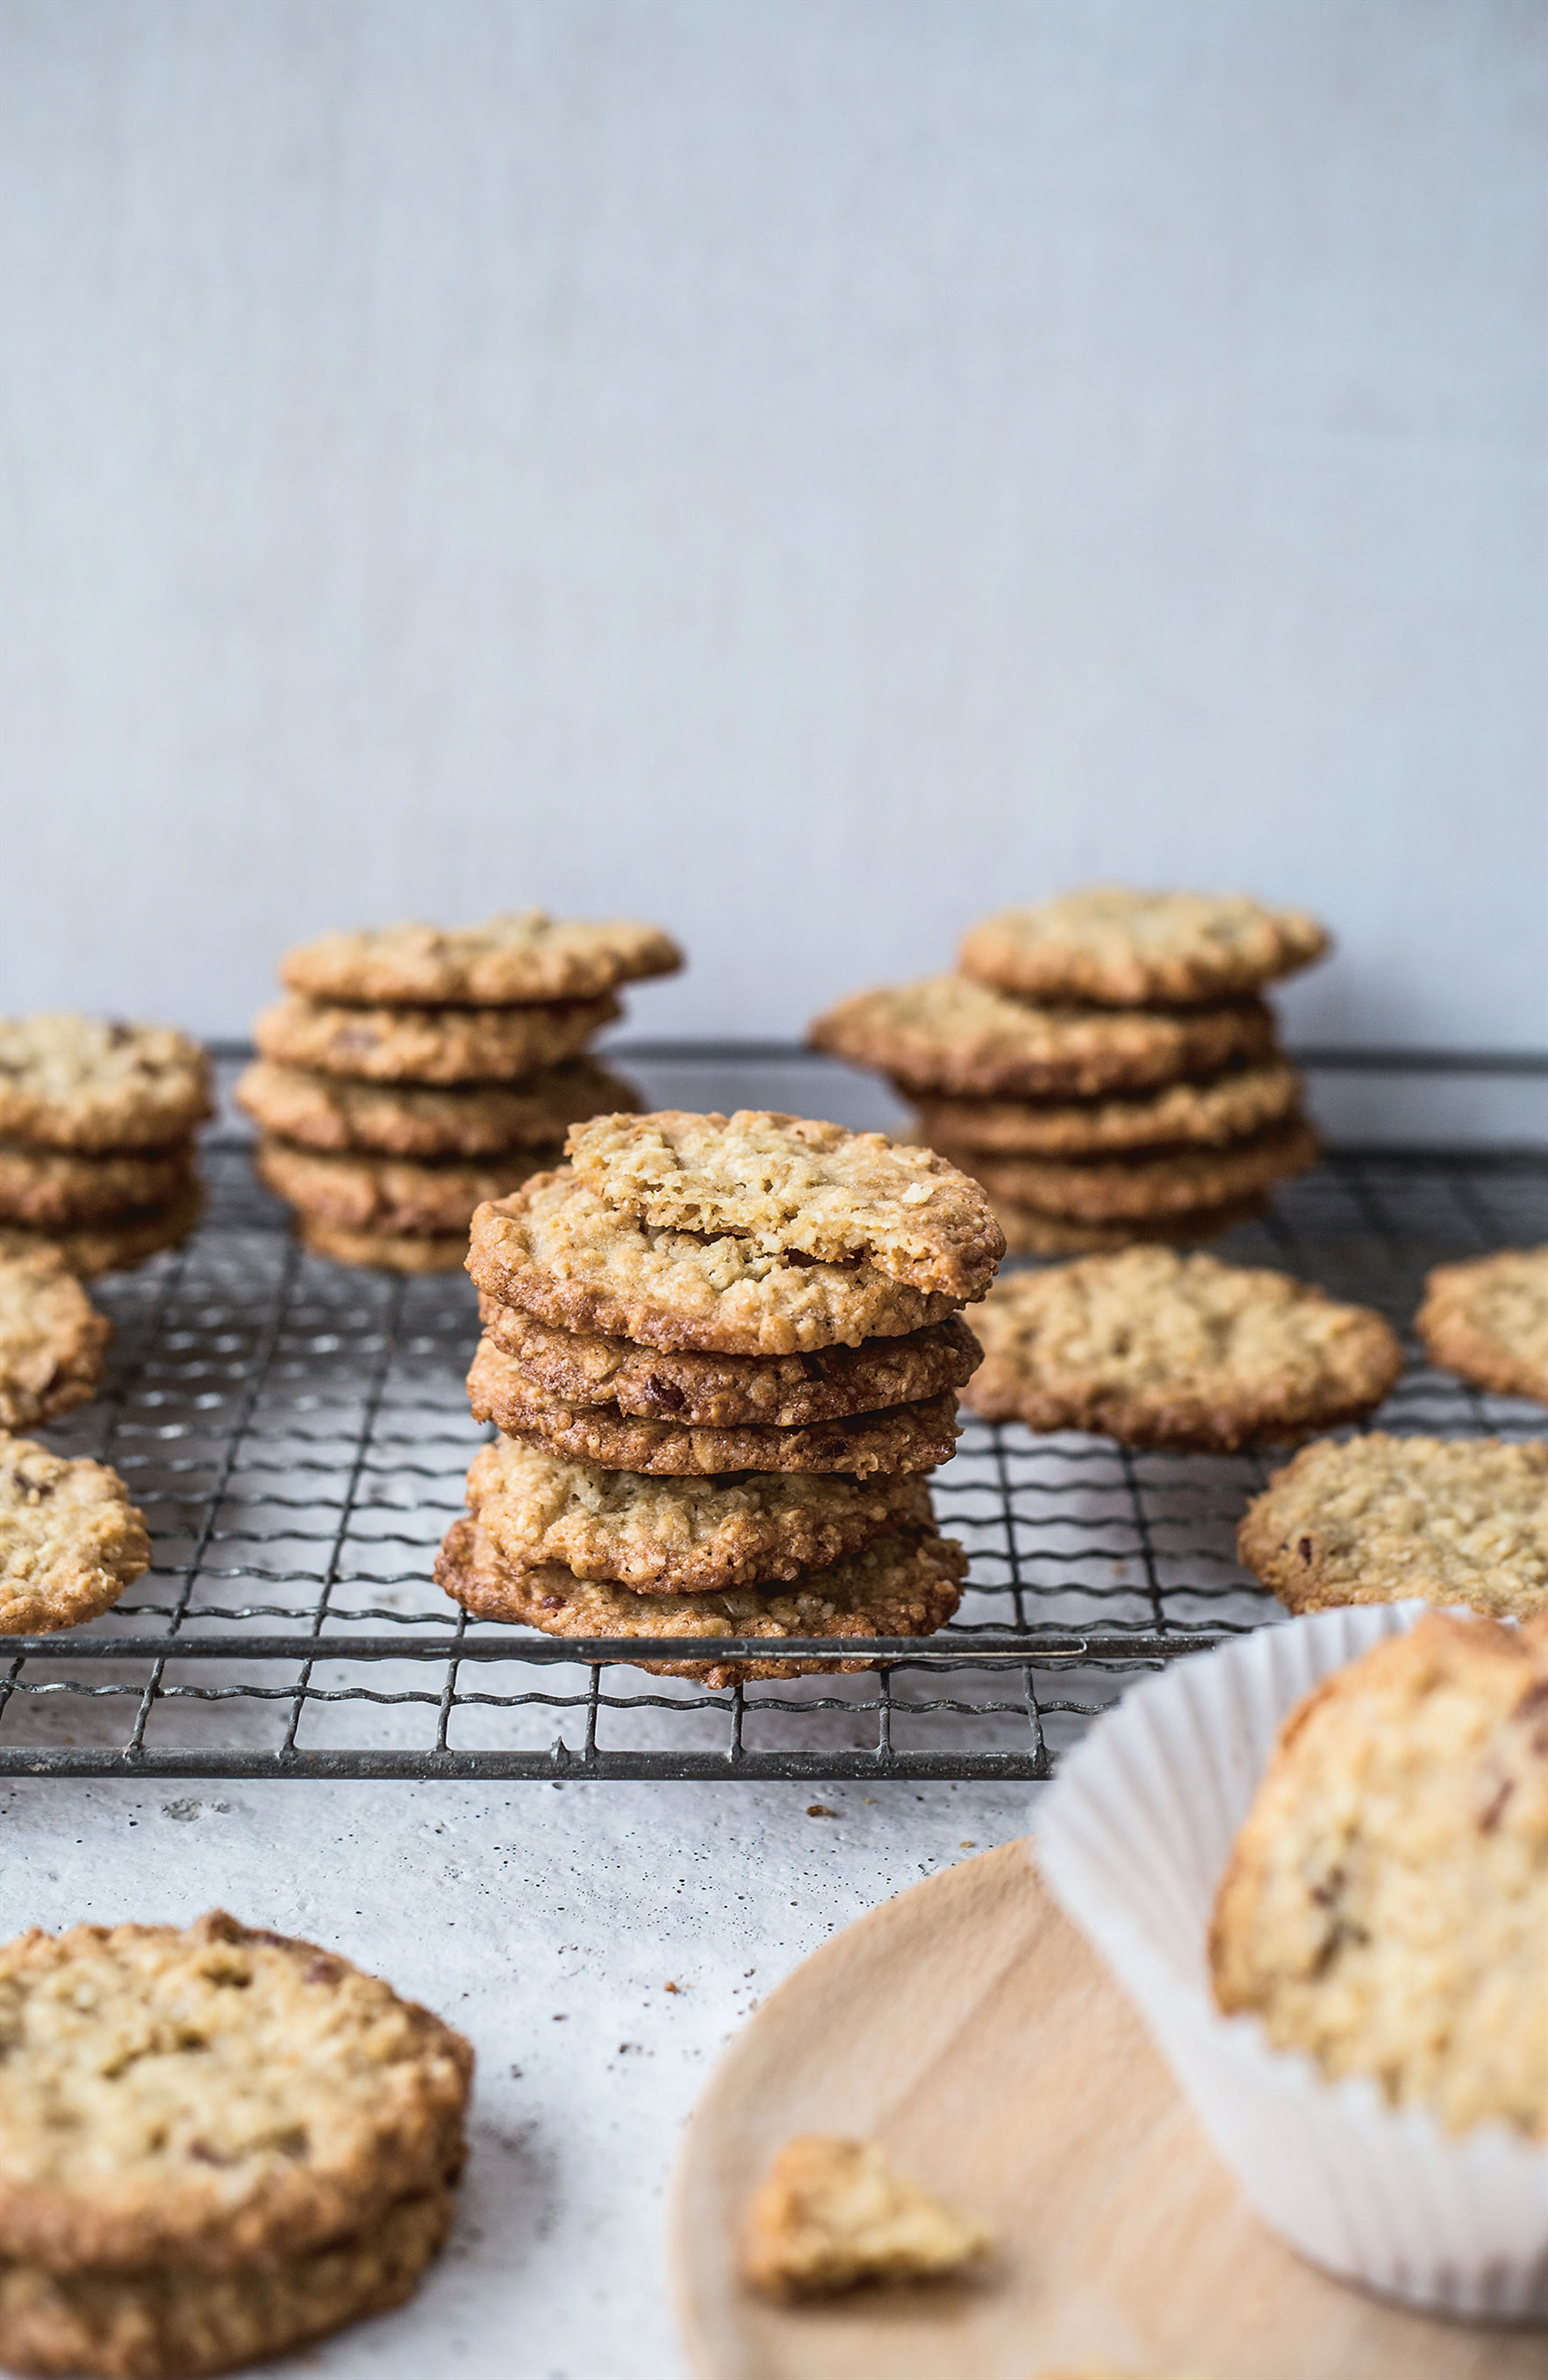 Cinnamon pecan and oatmeal cookies